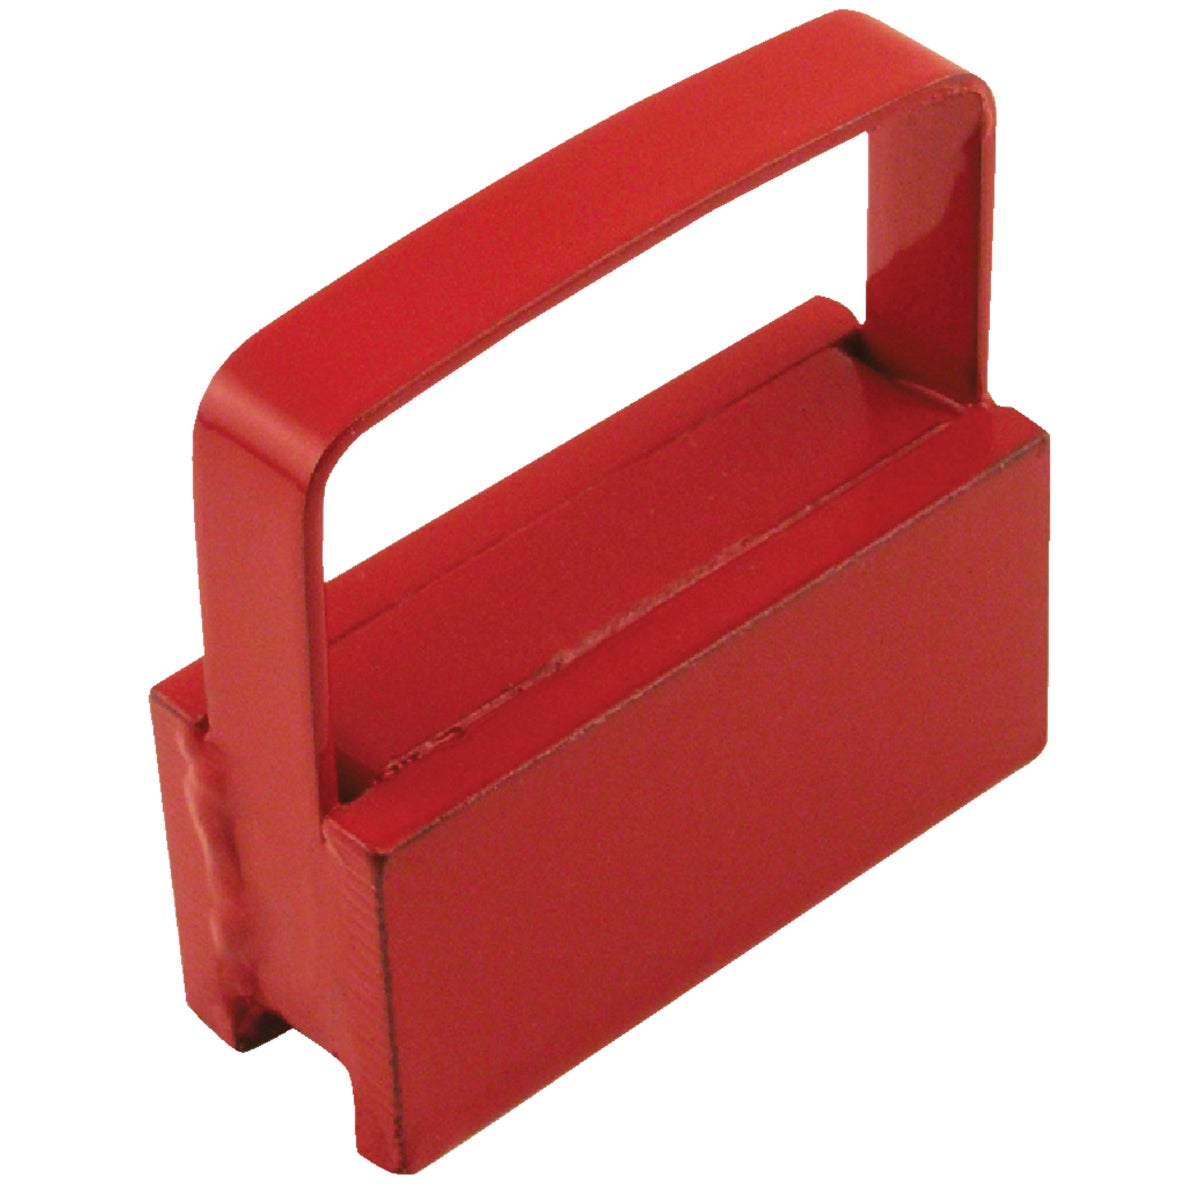 50LB HANDLE MAGNET - 07213 by Master Magnetics